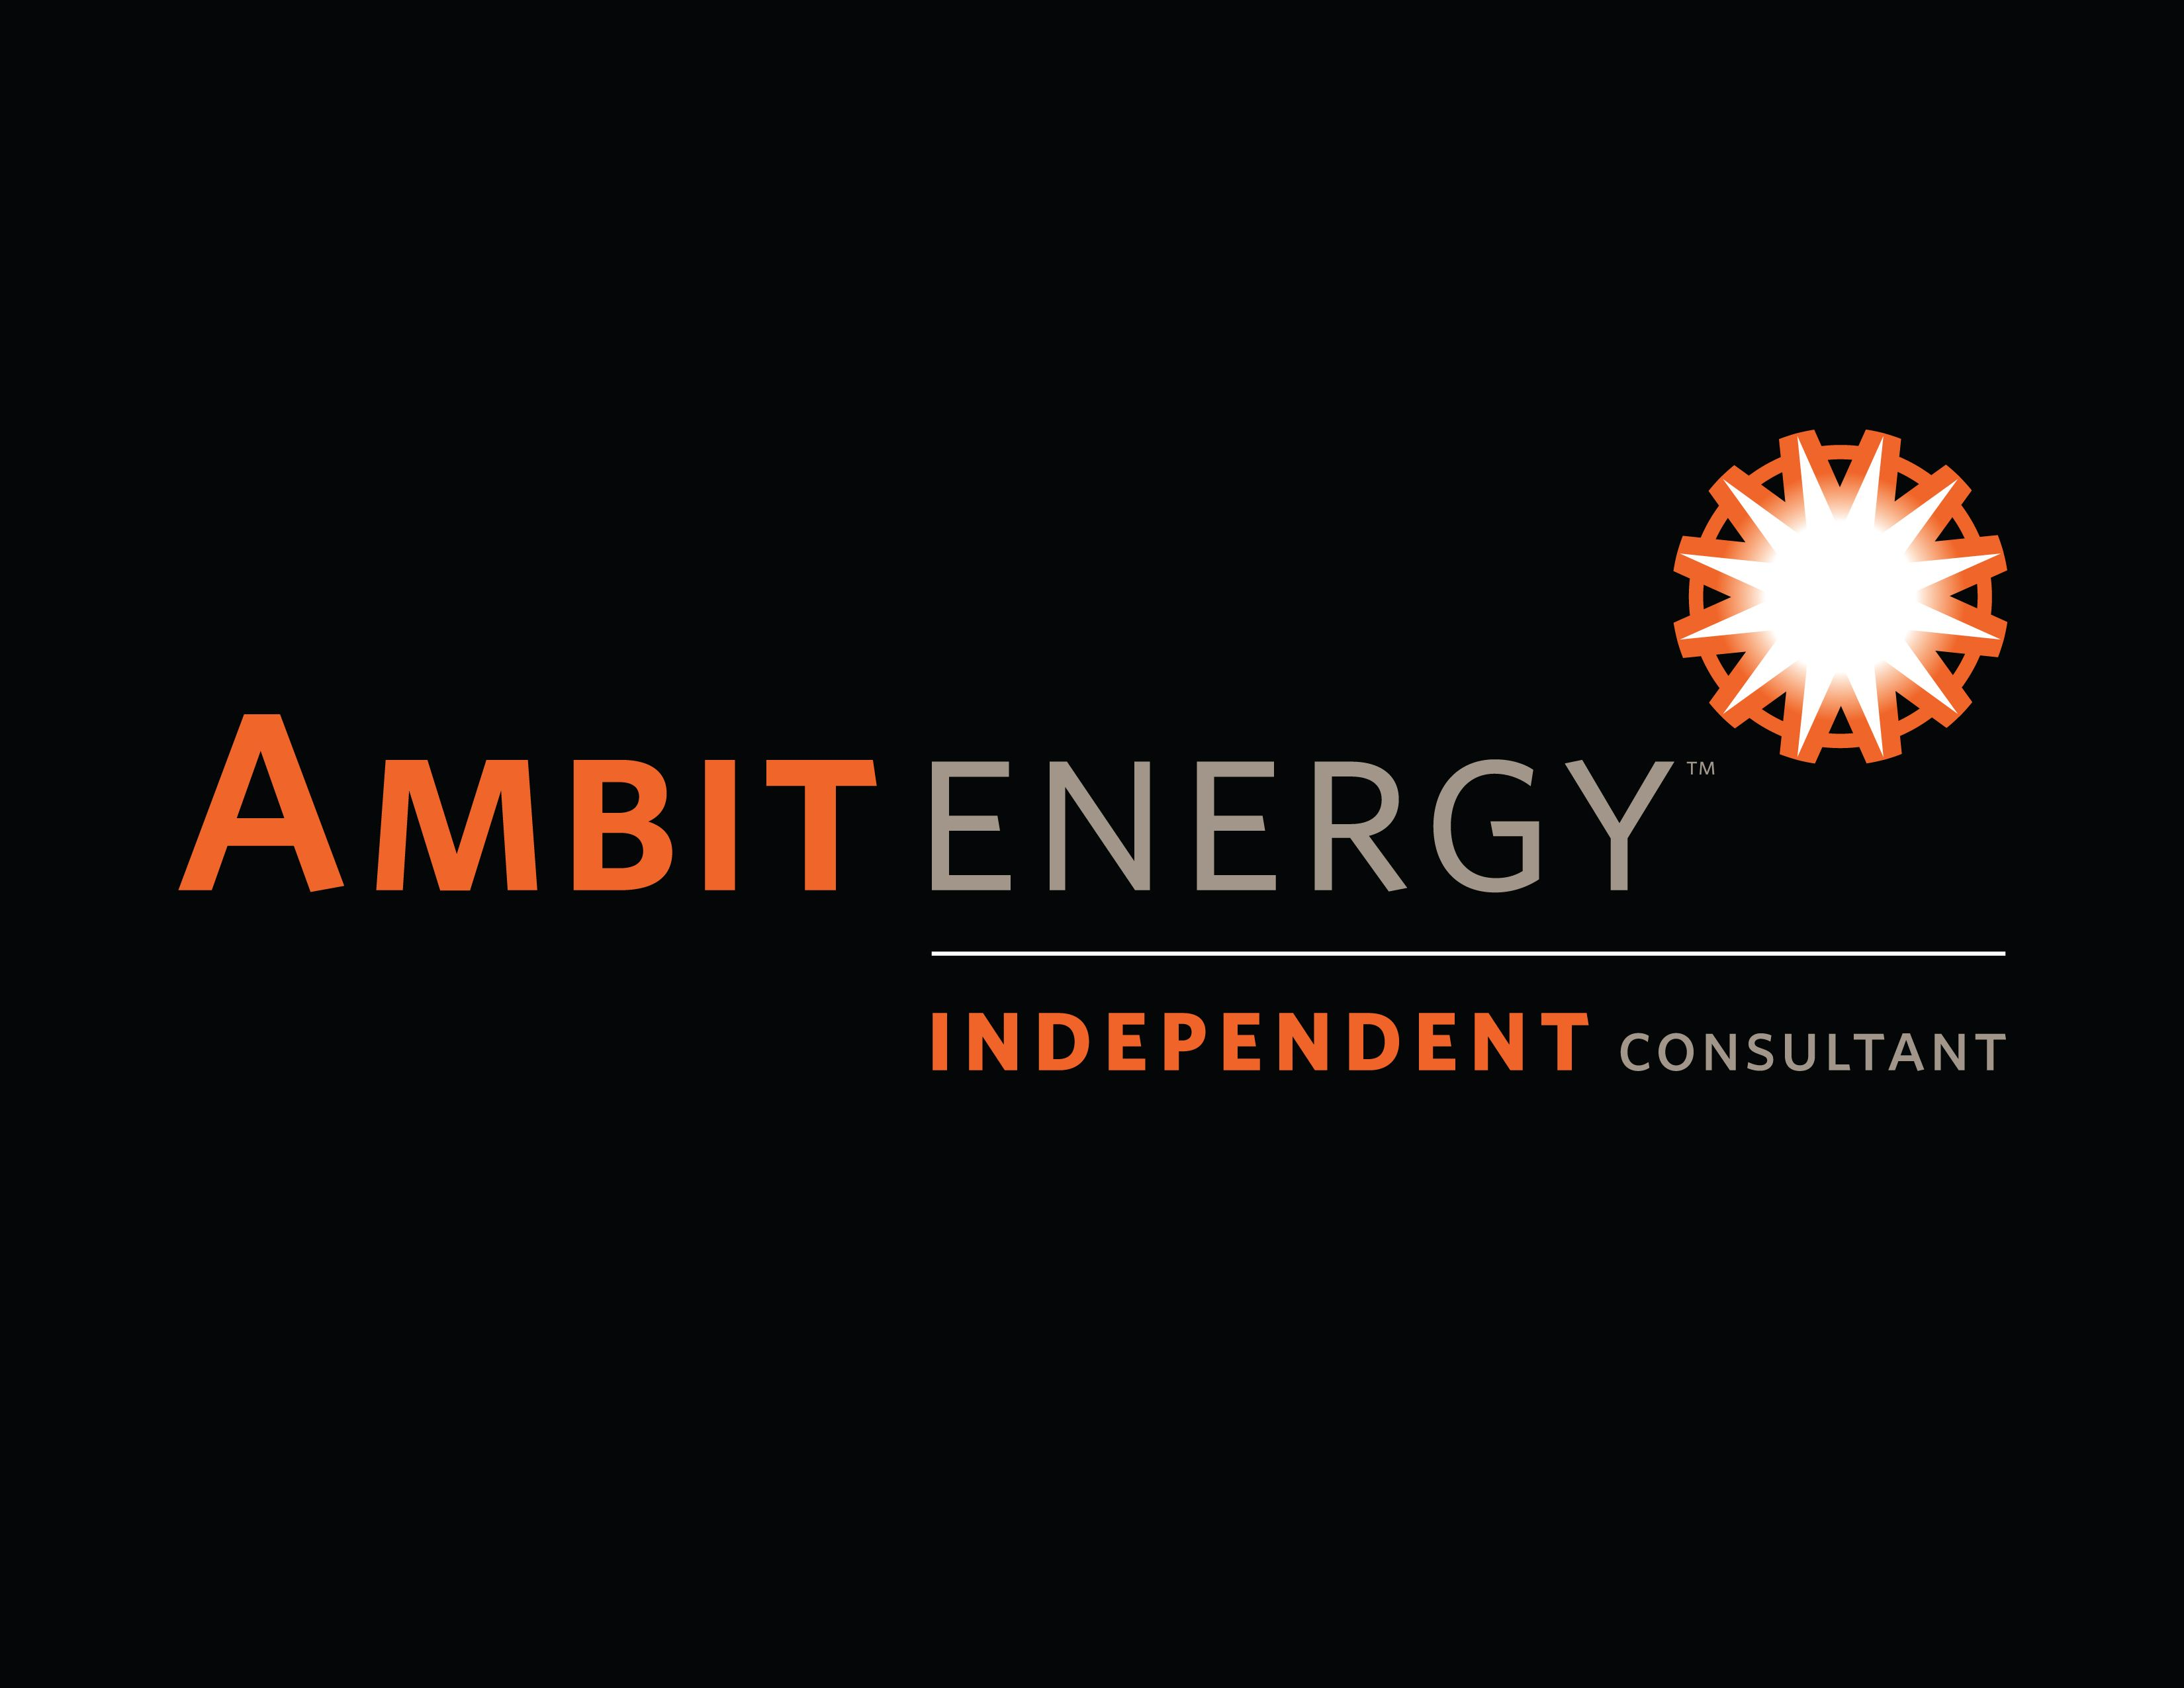 pin by corner to corner on ambit energy pinterest truths rh pinterest co uk EC Factory Ambit Business Cards Ambit Energy Business Cards